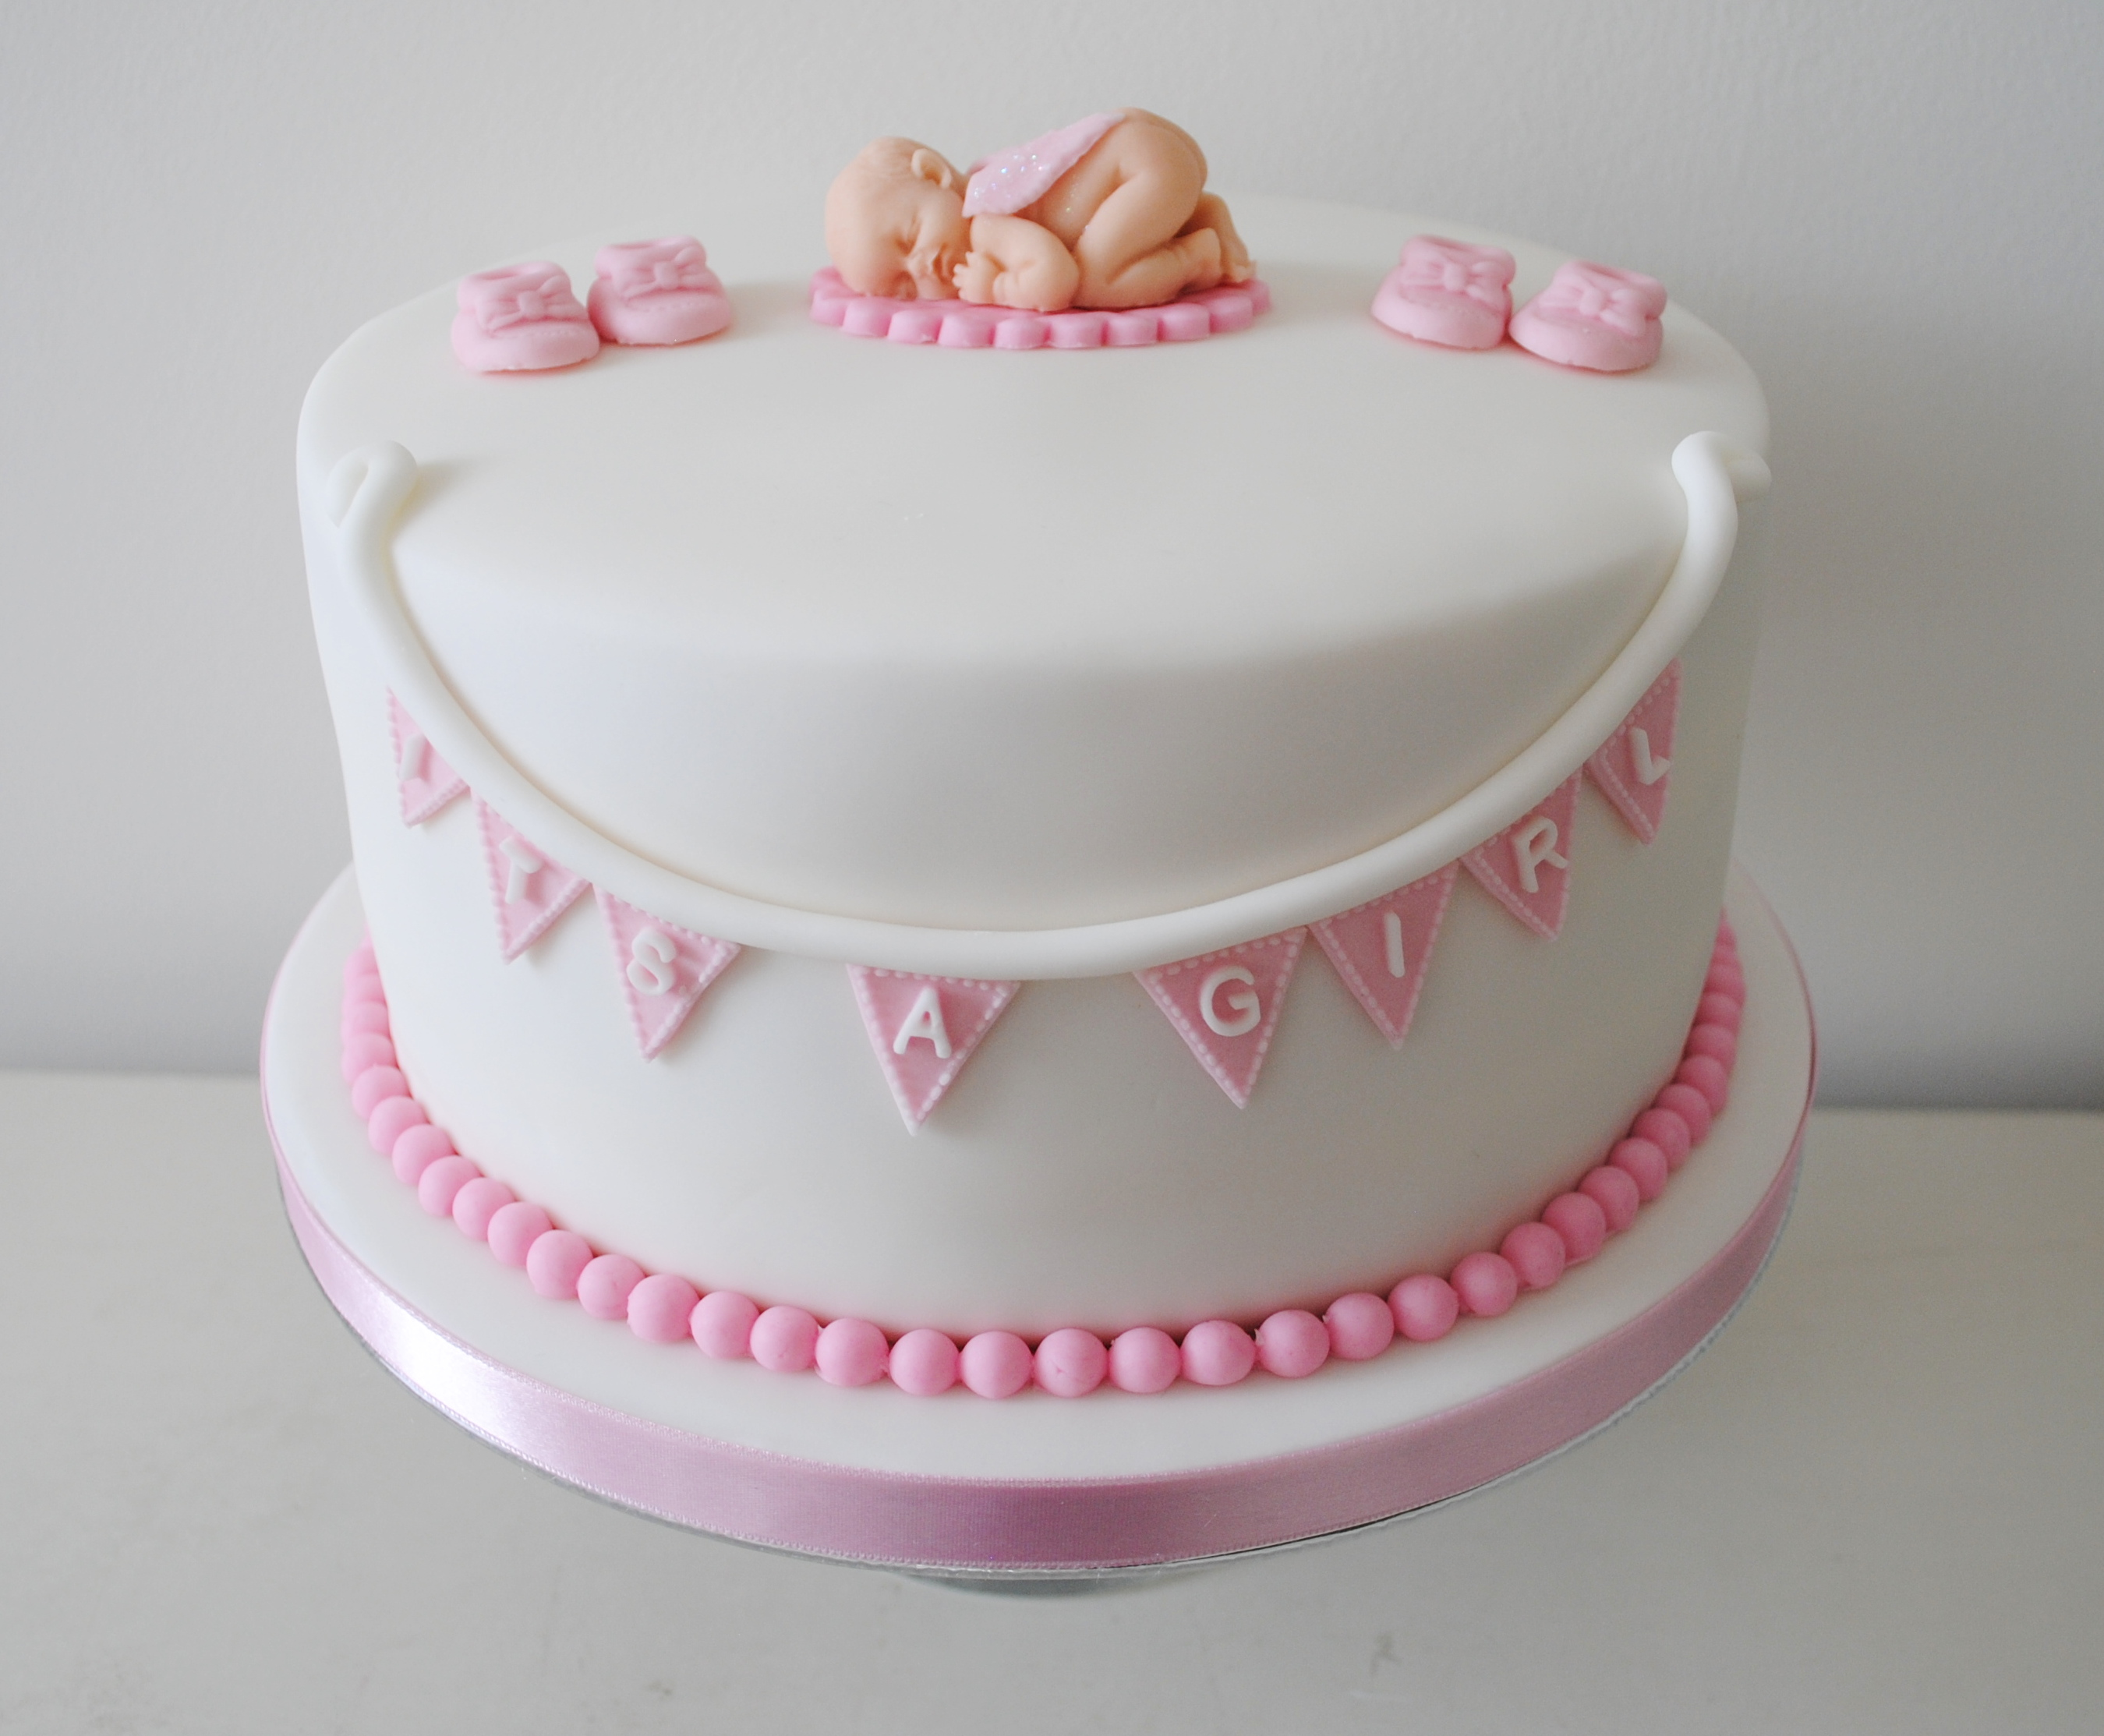 Girl baby shower cakes be equipped baby shower icing decorations be equipped cake for shower party